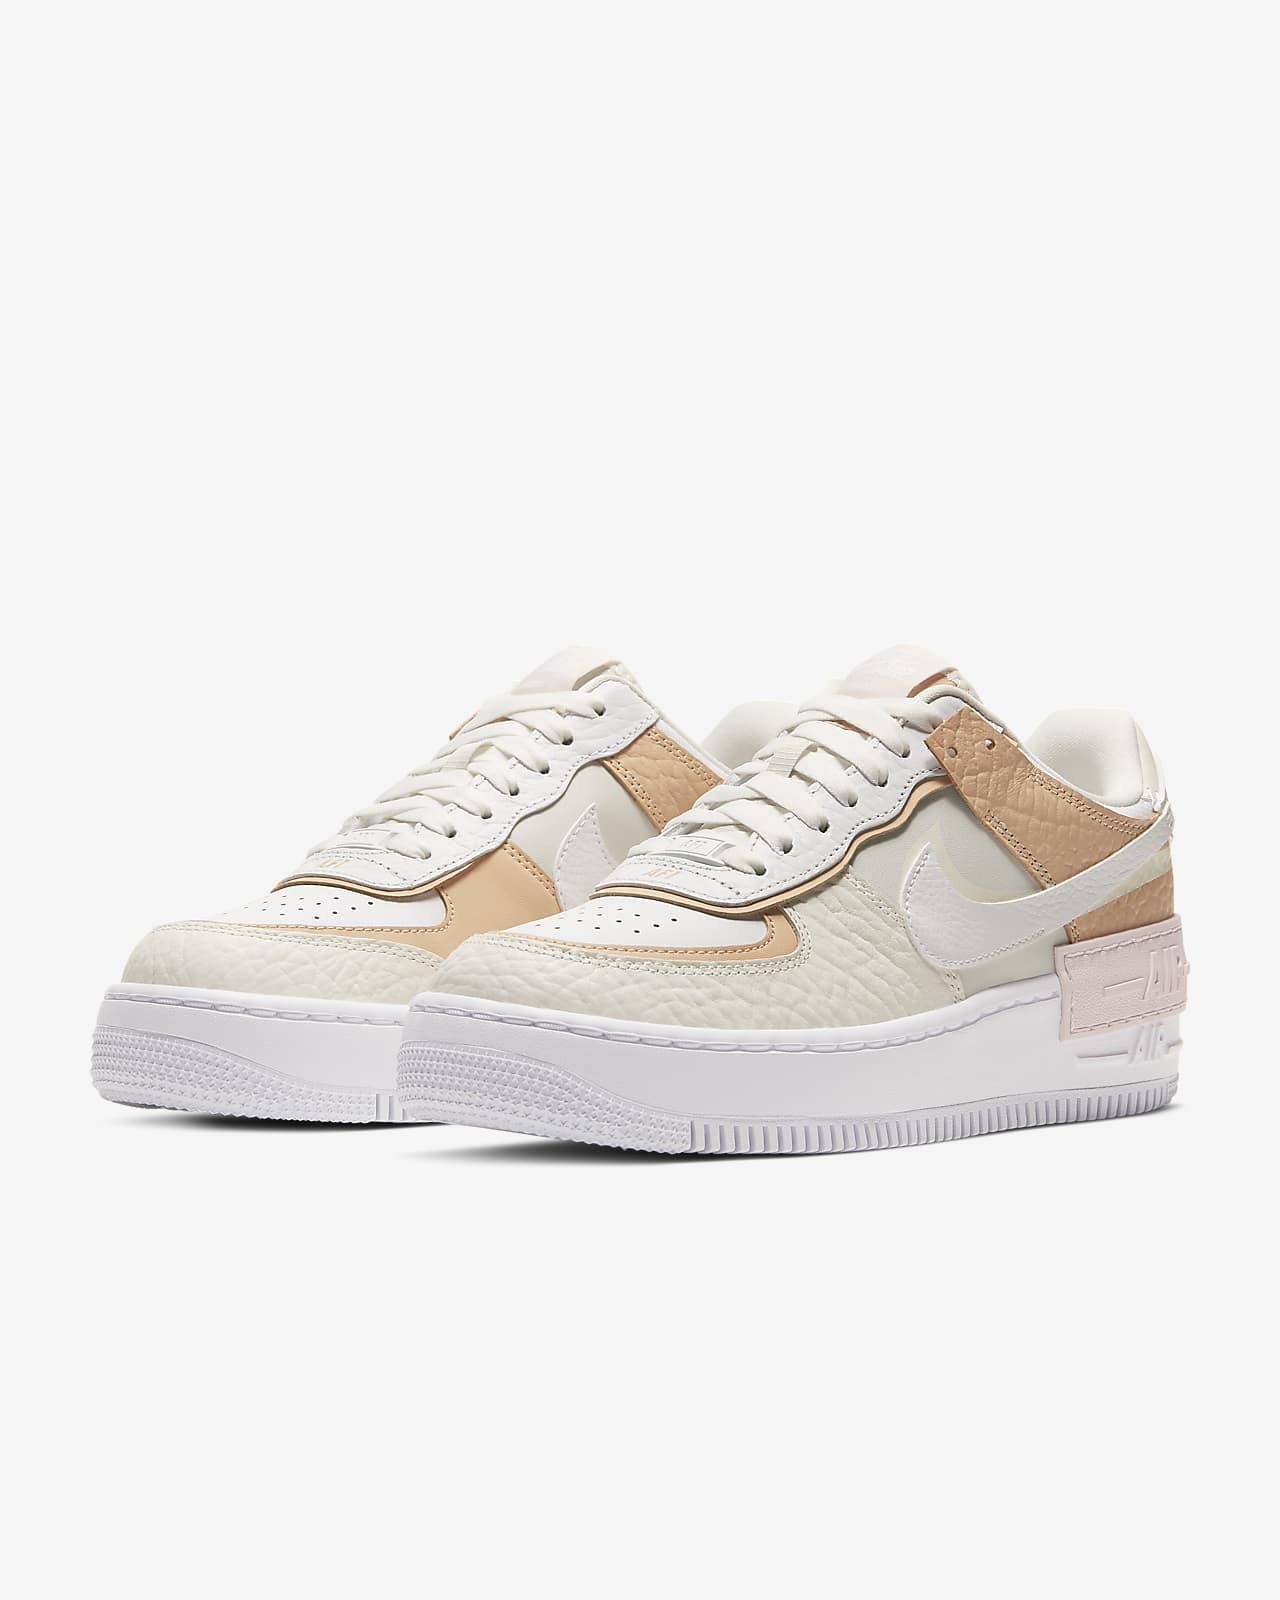 Nike Air Force 1 Shadow Se Women S Shoe Nike Ph Latest information about air force ones. nike air force 1 shadow se women s shoe